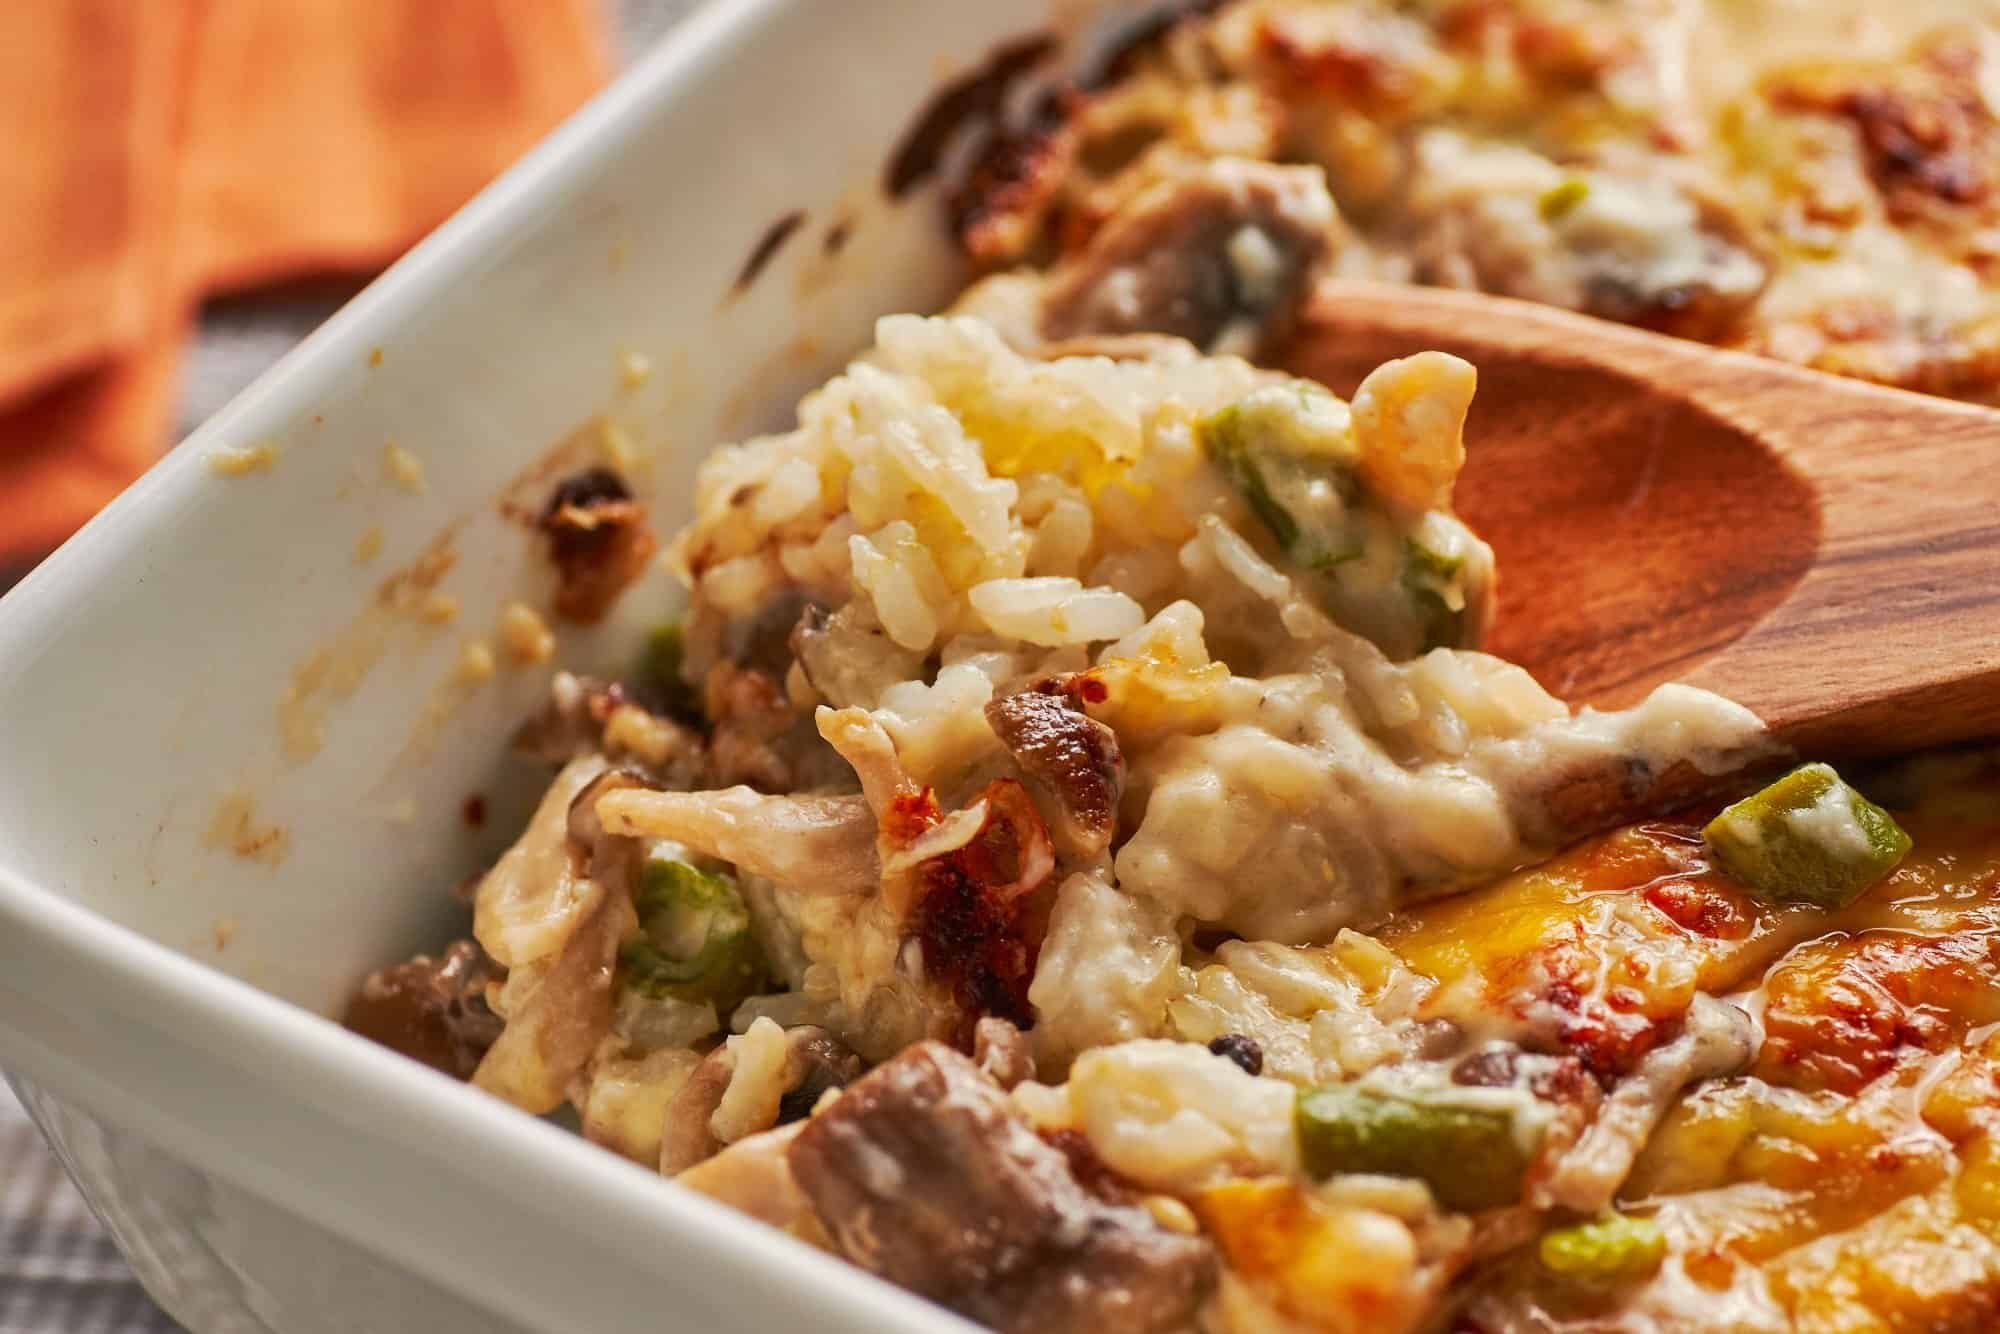 Under the bubbling sea of creamy mushroom and green bean bechmel and cheese lies a hearty bed of rice.